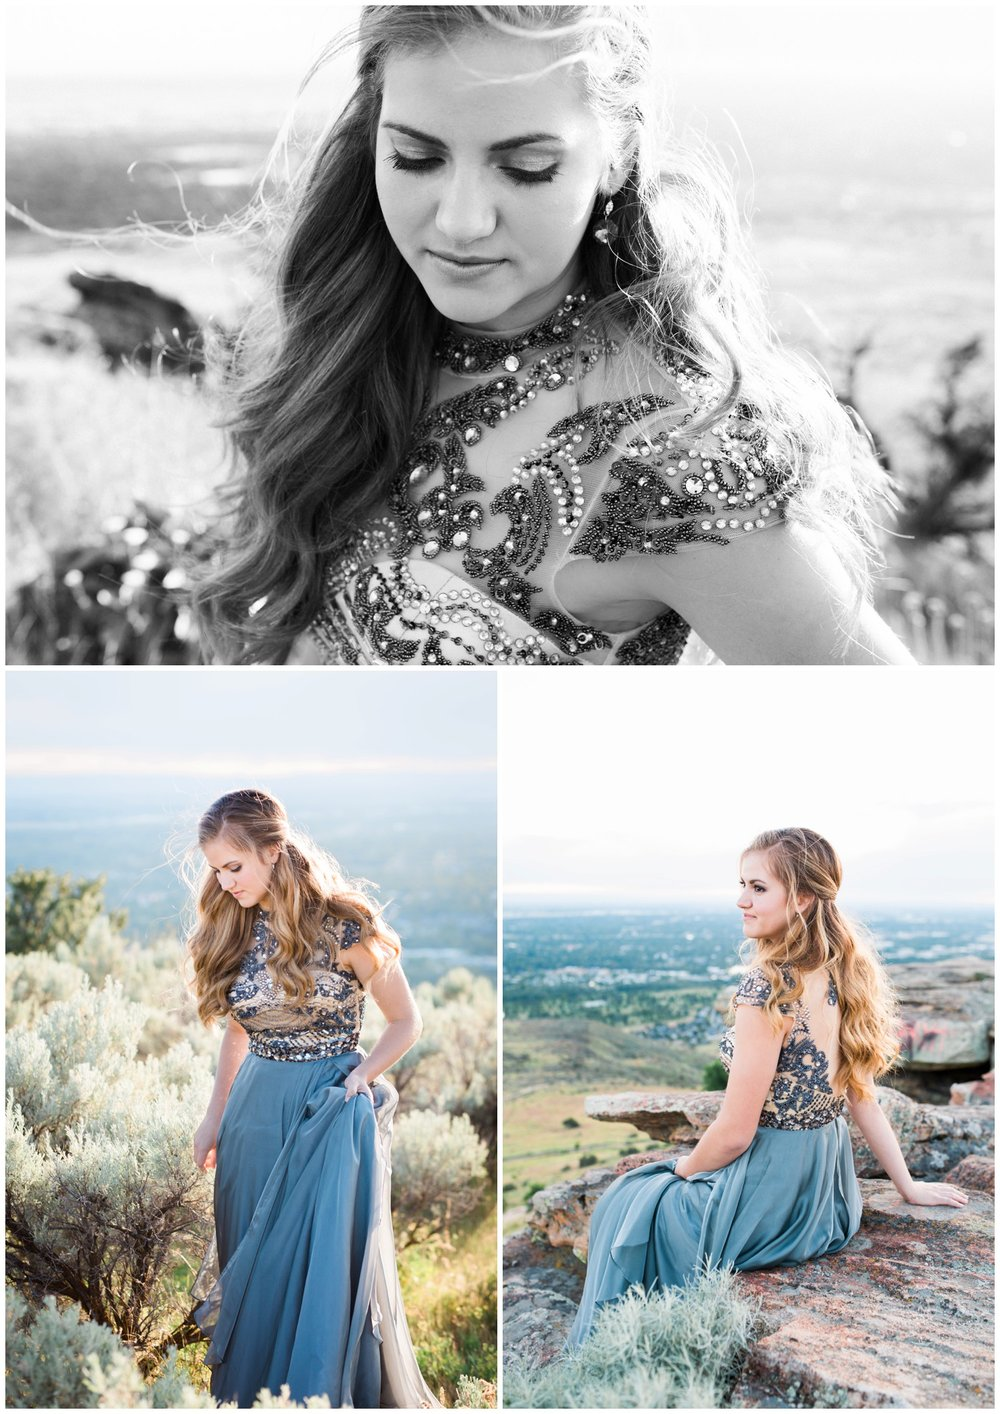 Senior photographs on a cliffside among sagebrush.